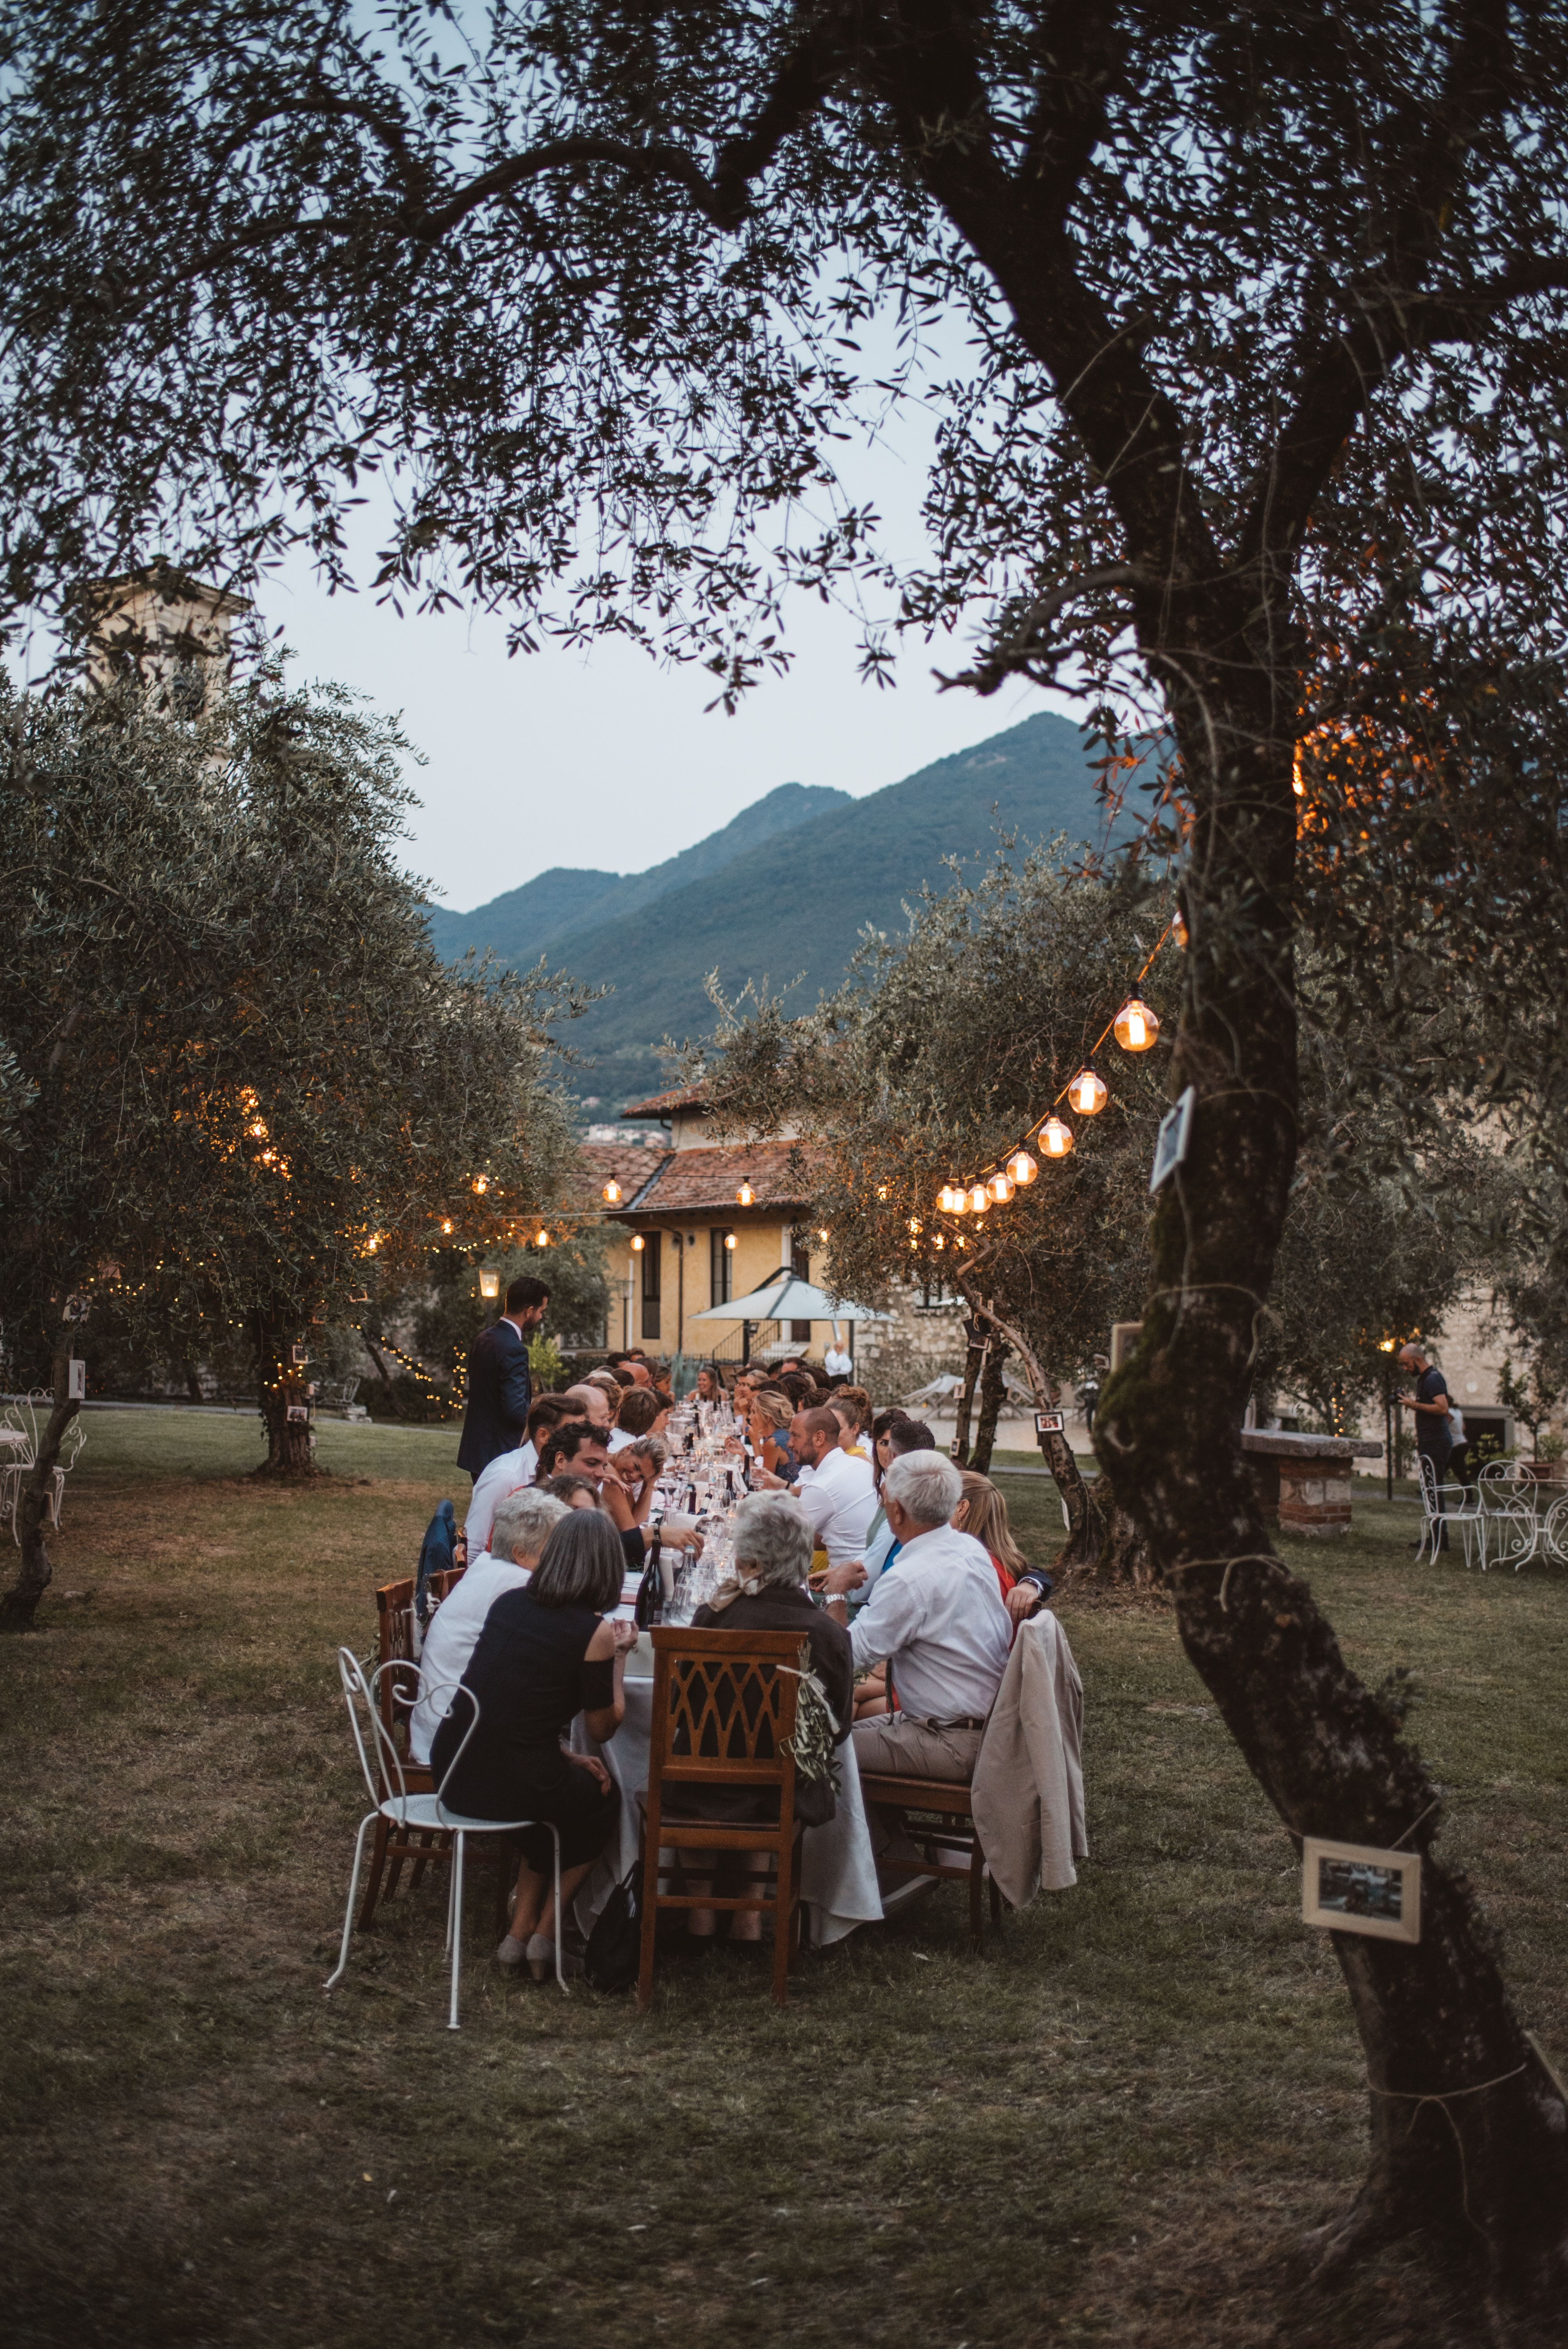 Italian wedding dinner - a long table is an italian tradition and we love it. It's like a casual family gathering at home and it makes the wedding feel so cozy. What better than to enjoy great italian wedding food outside, under the olive trees while looking at the view and having a blast! Click on the image to see the whole wedding!